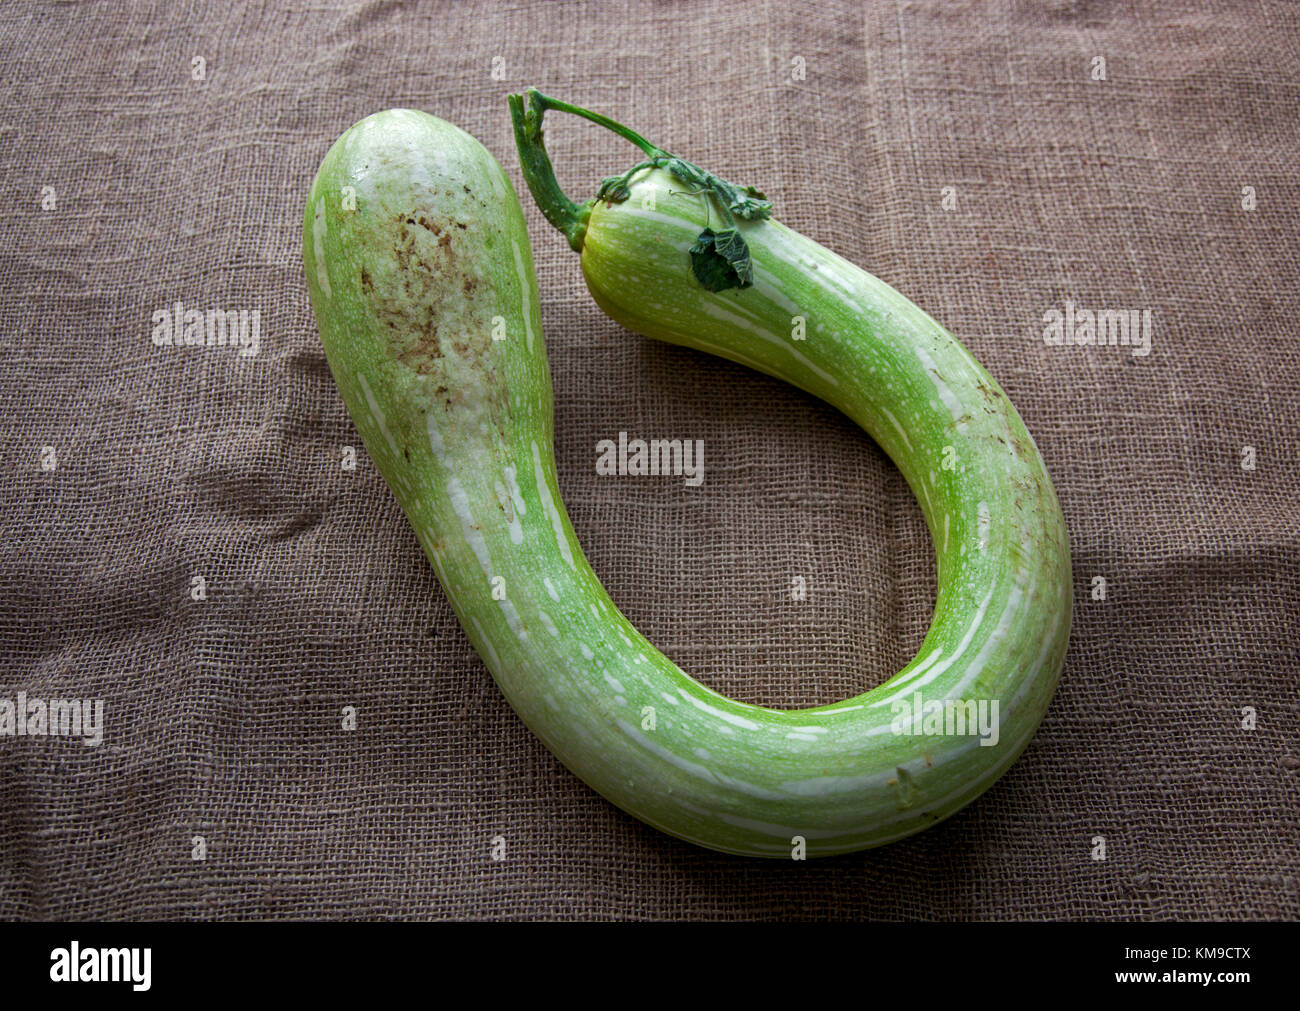 A close up of an unusually shaped Italian trombone squash on a piece of sacking - Stock Image